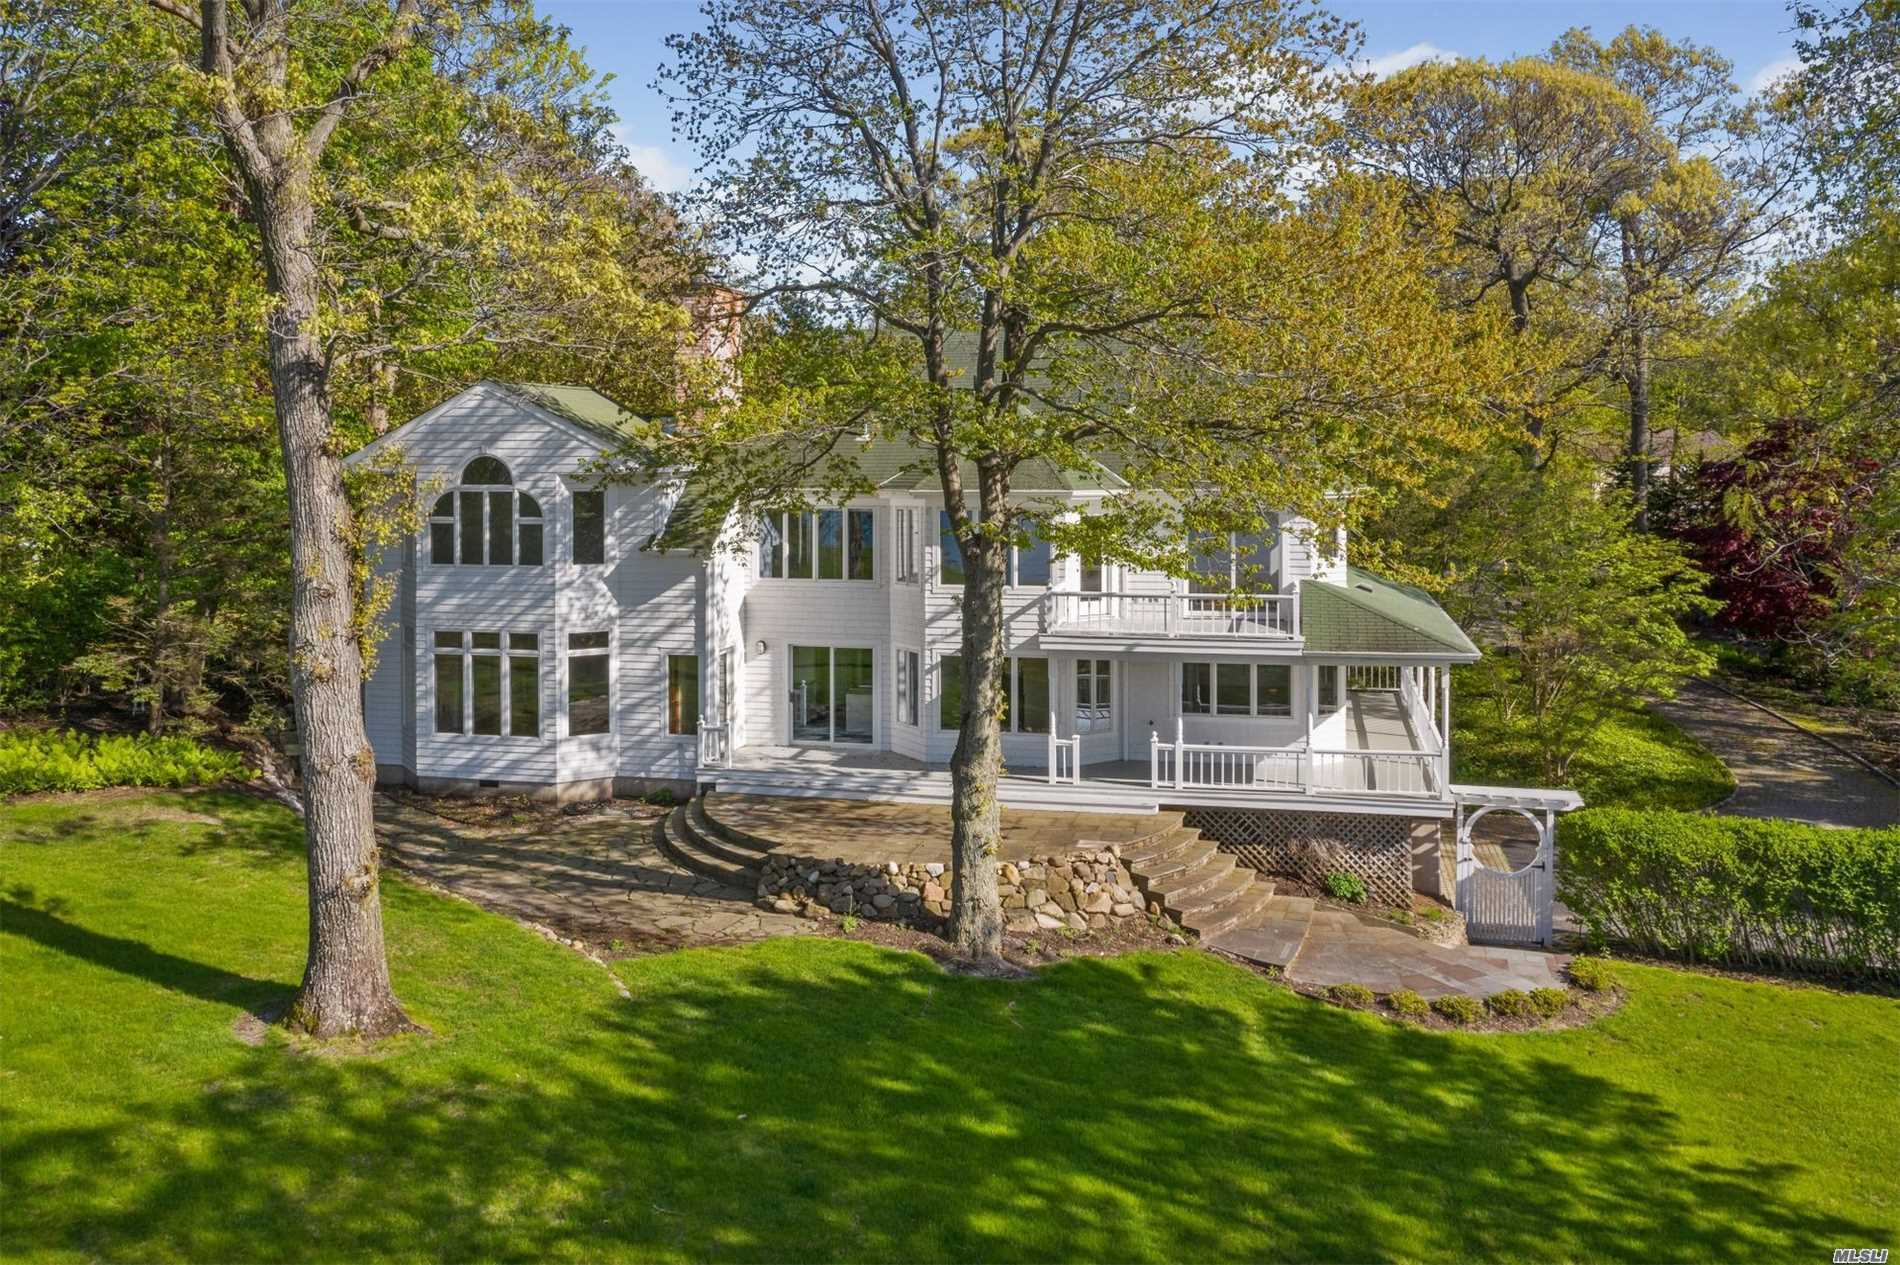 Everyday can feel like your on vacation here at this stately 1.75 acre property set high above the Long Island Sound on a bluff offering breathtaking water views from almost every room of this 4 bedroom Colonial. Stairway lead directly to beach for easy access.